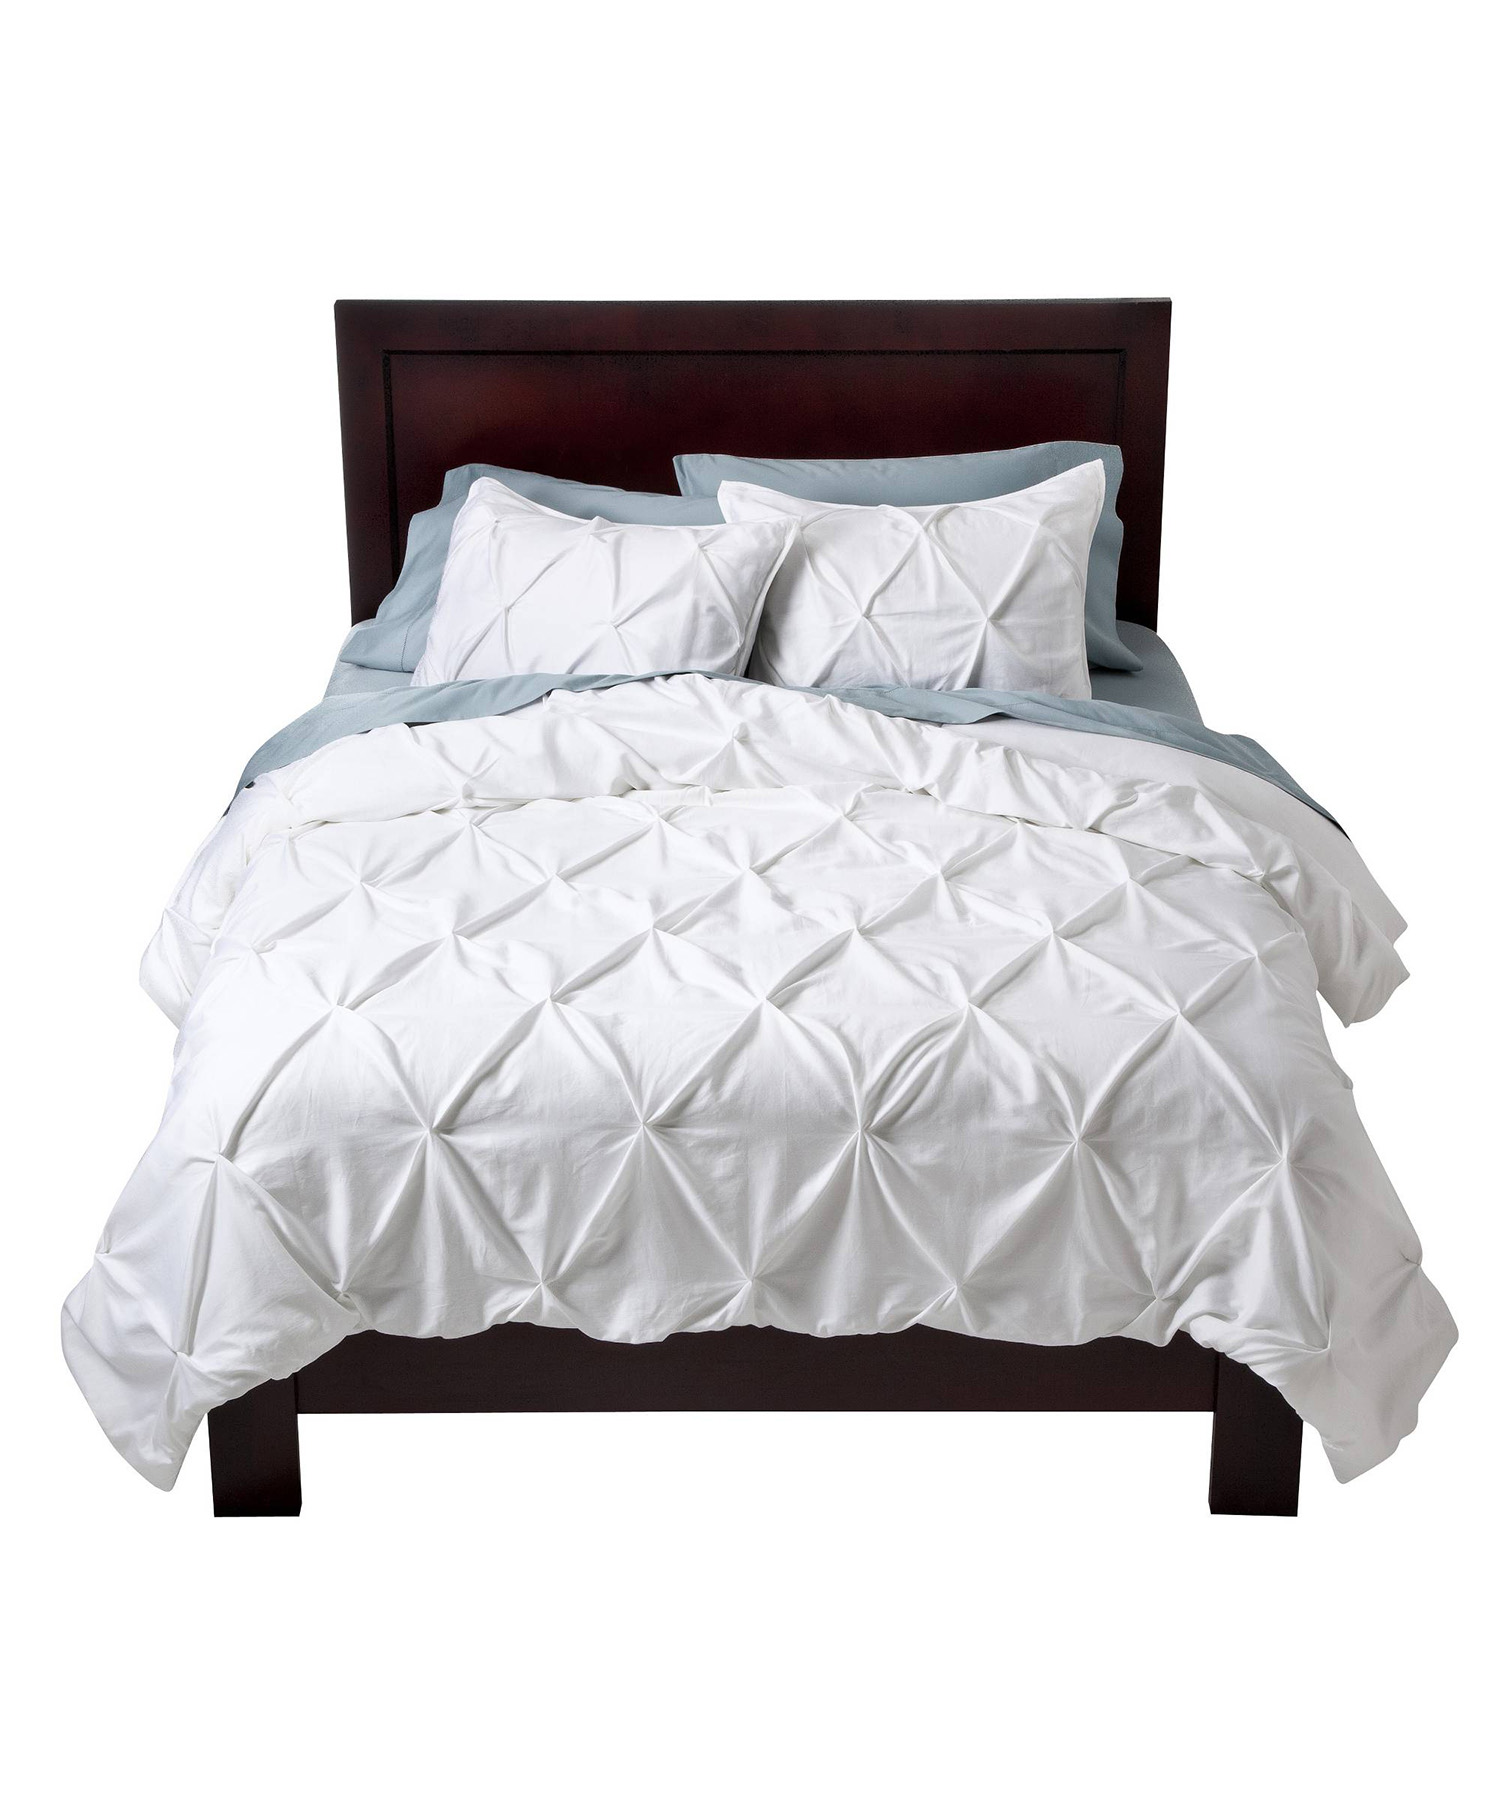 Pleated White Comforter on bed